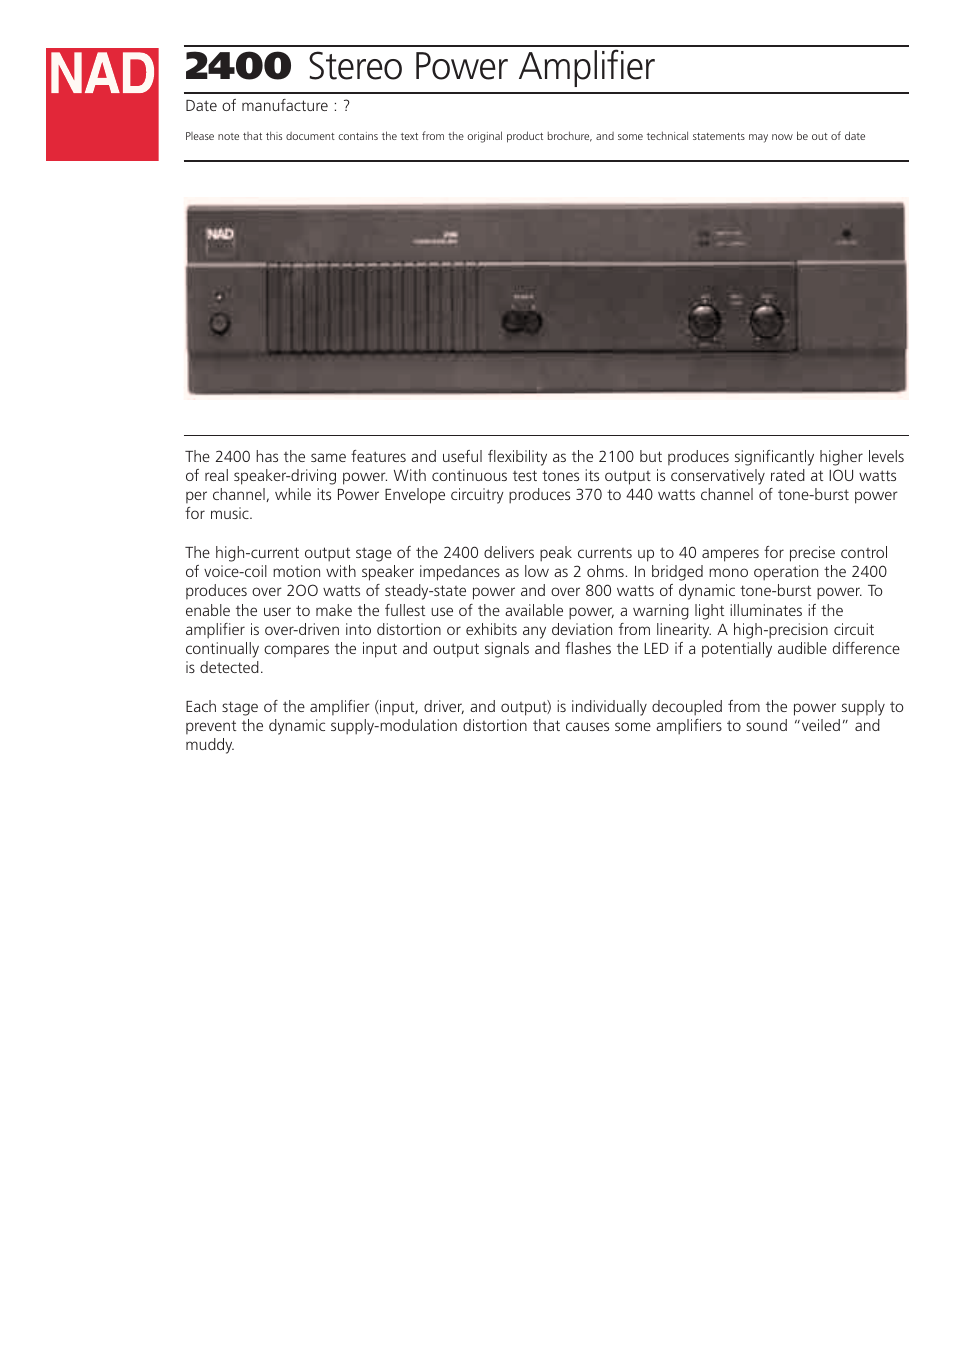 NAD 2400 User Manual | 2 pages